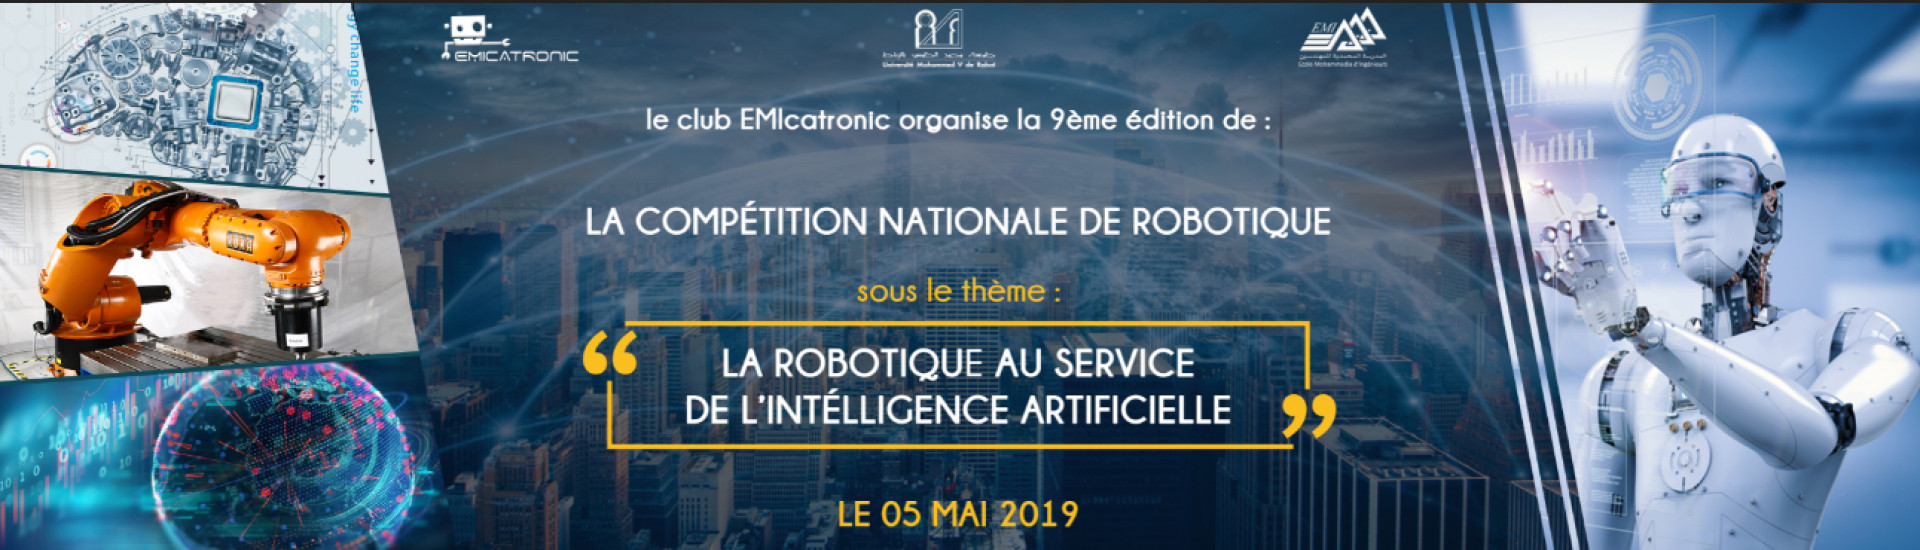 La compétition nationale de robotique